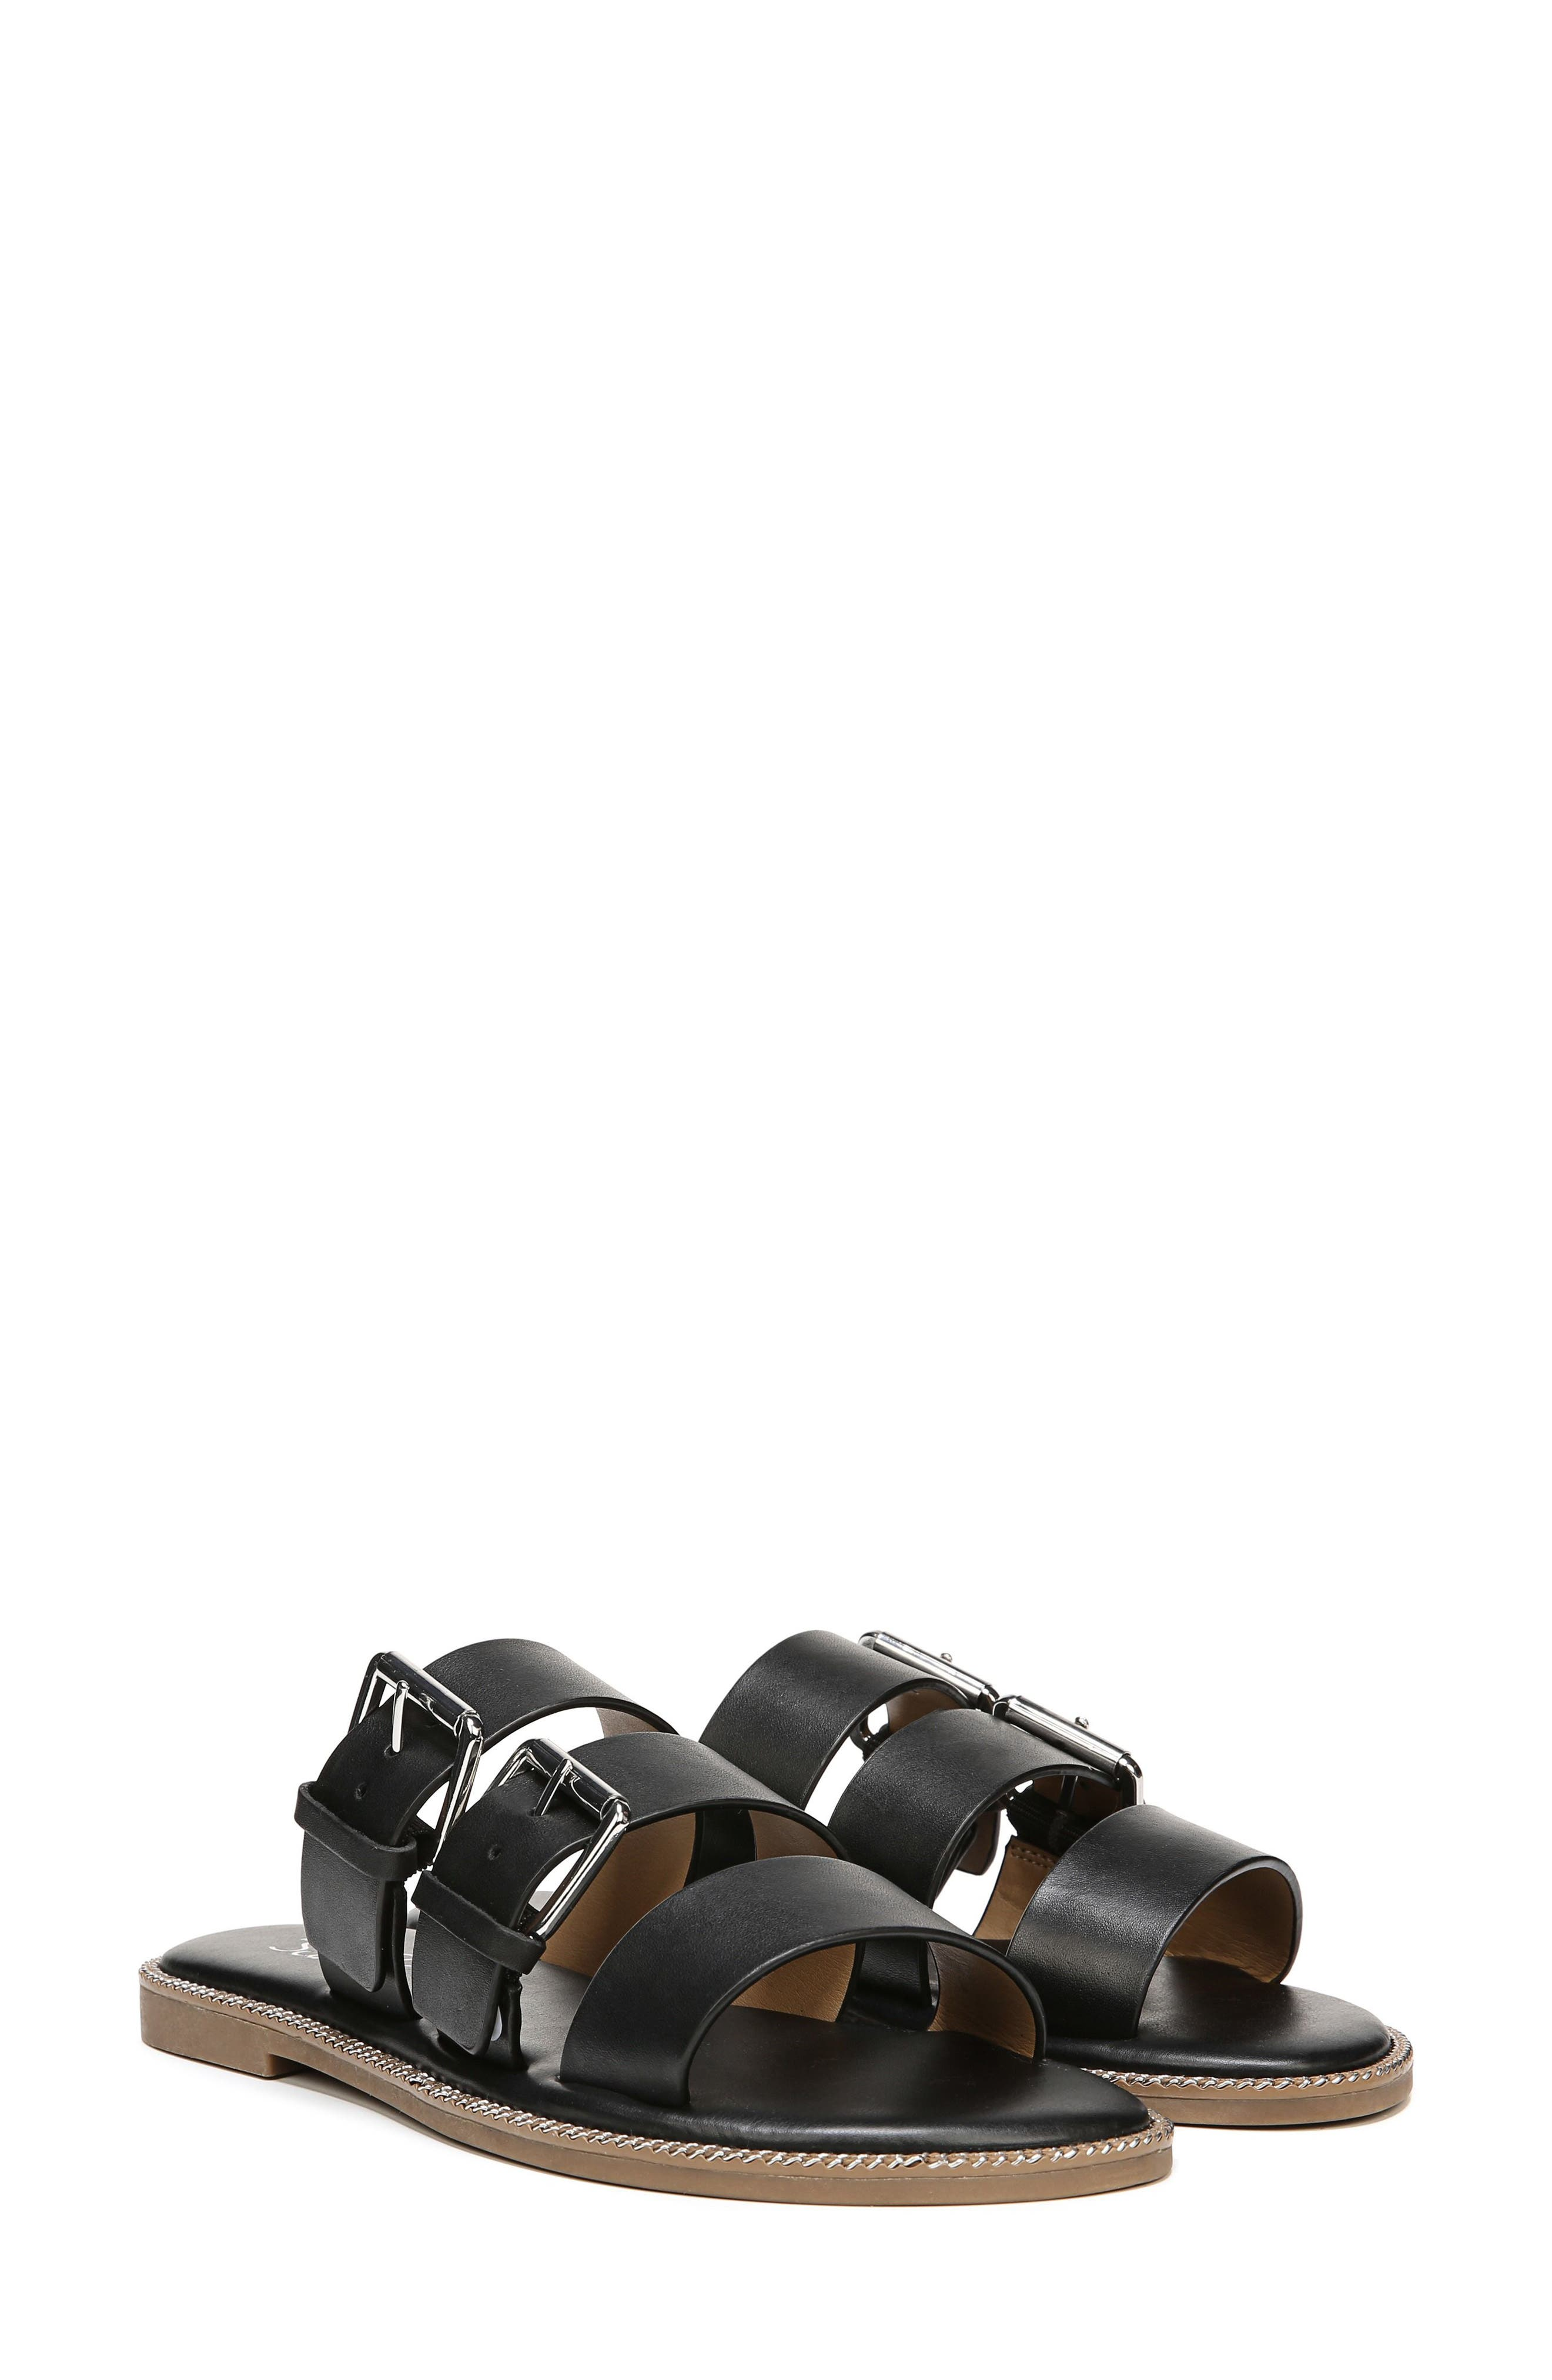 SARTO by Franco Sarto Kasa Three Strap Slide Sandal,                             Main thumbnail 1, color,                             BLACK LEATHER